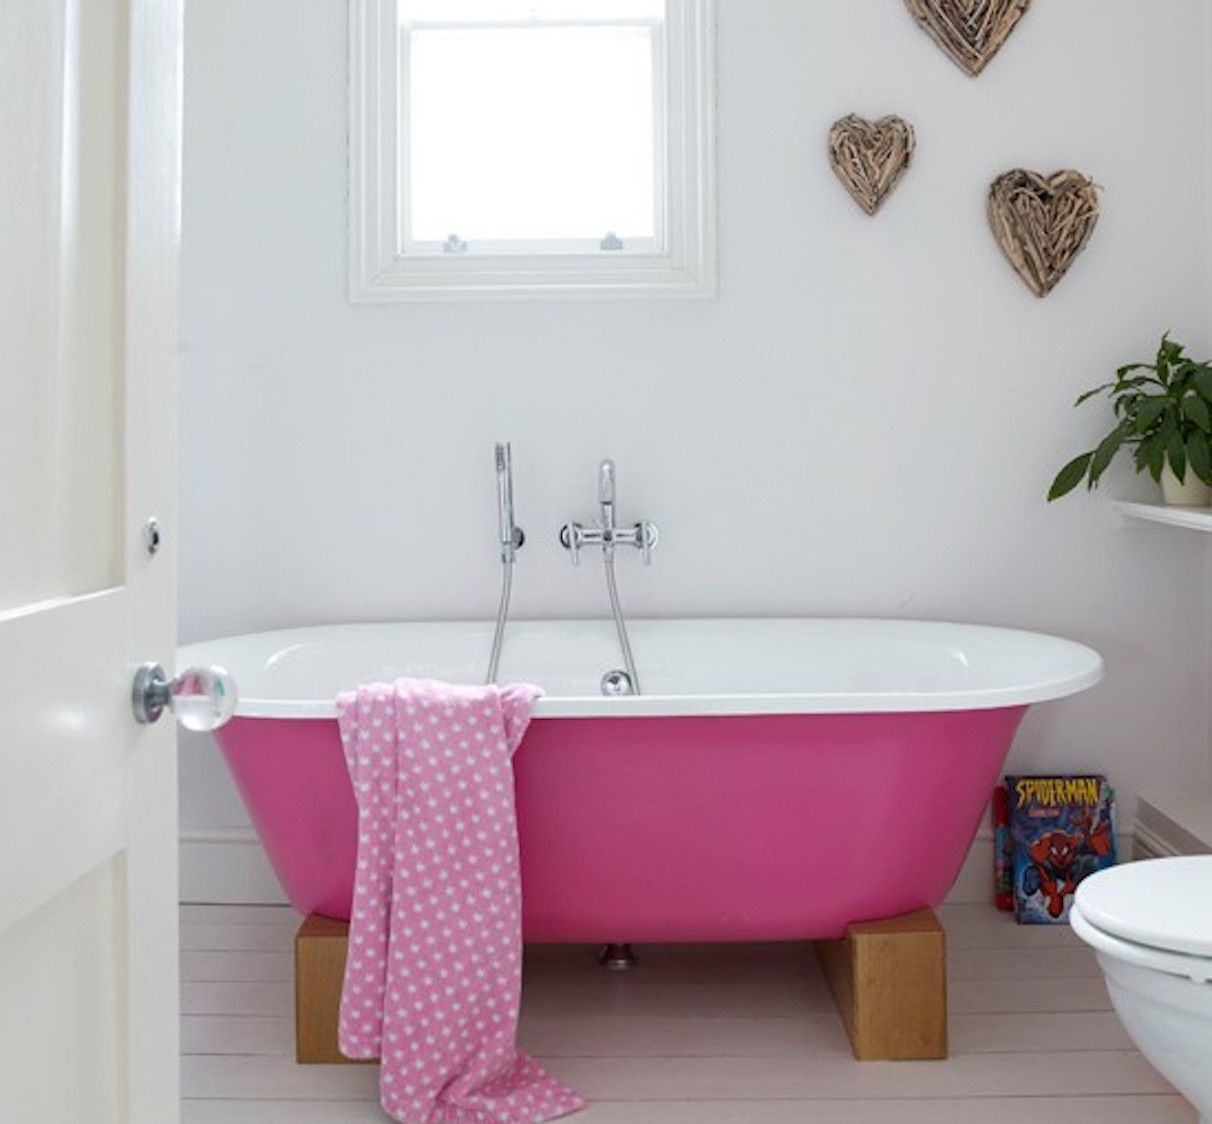 25 Small Bathrooms with Good Feng Shui